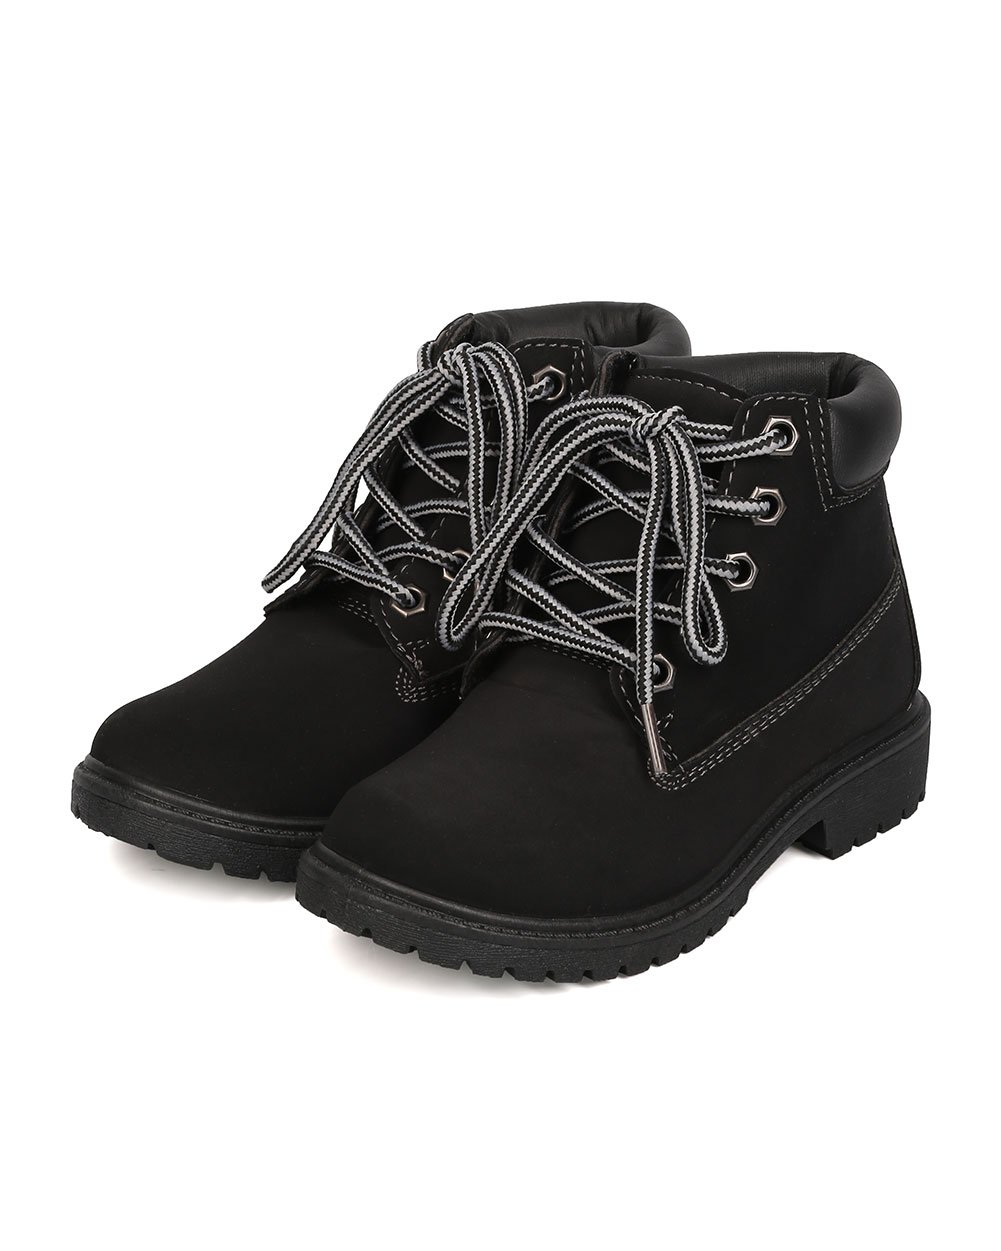 Nubuck Round Toe Lace Up Lug Sole All Weather Ankle Boot (Toddler/Little Girl/Big Girl) FA28 - Black (Size: Toddler 9) by Refresh (Image #5)